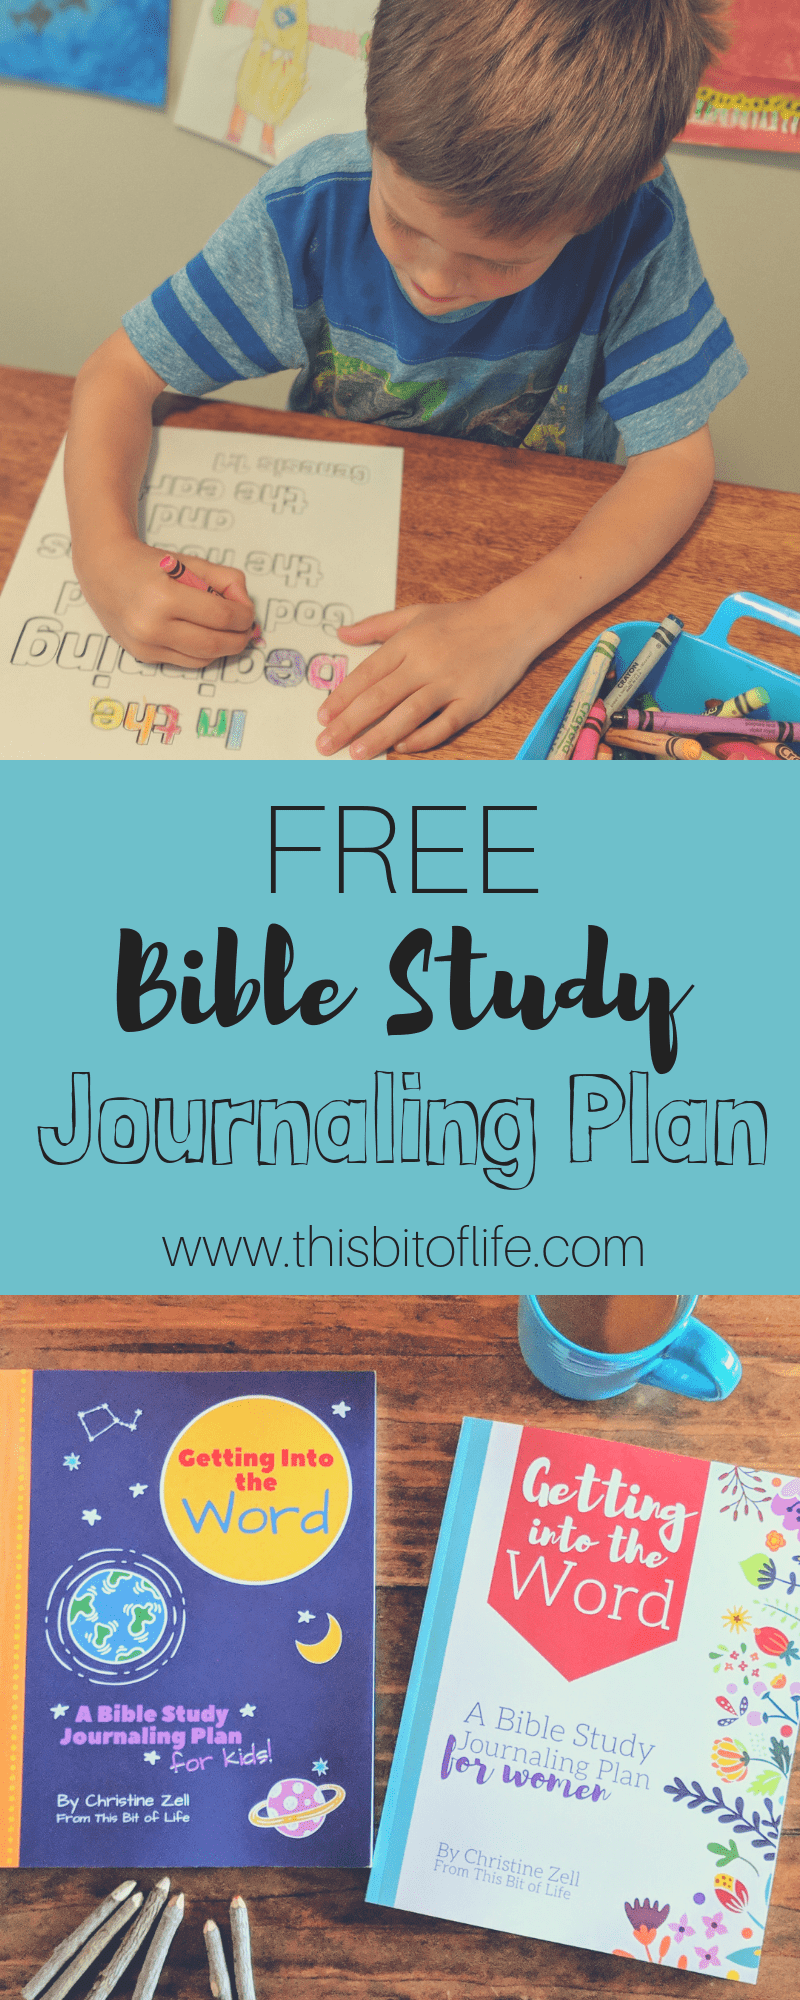 A free Bible Study Journal along with a 6 month reading plan. Get into  the Word together with your family! There are journal options for both women and children, complete with memory verses, coloring pages, and more.   #biblestudy #biblejournal #homeschoolbible